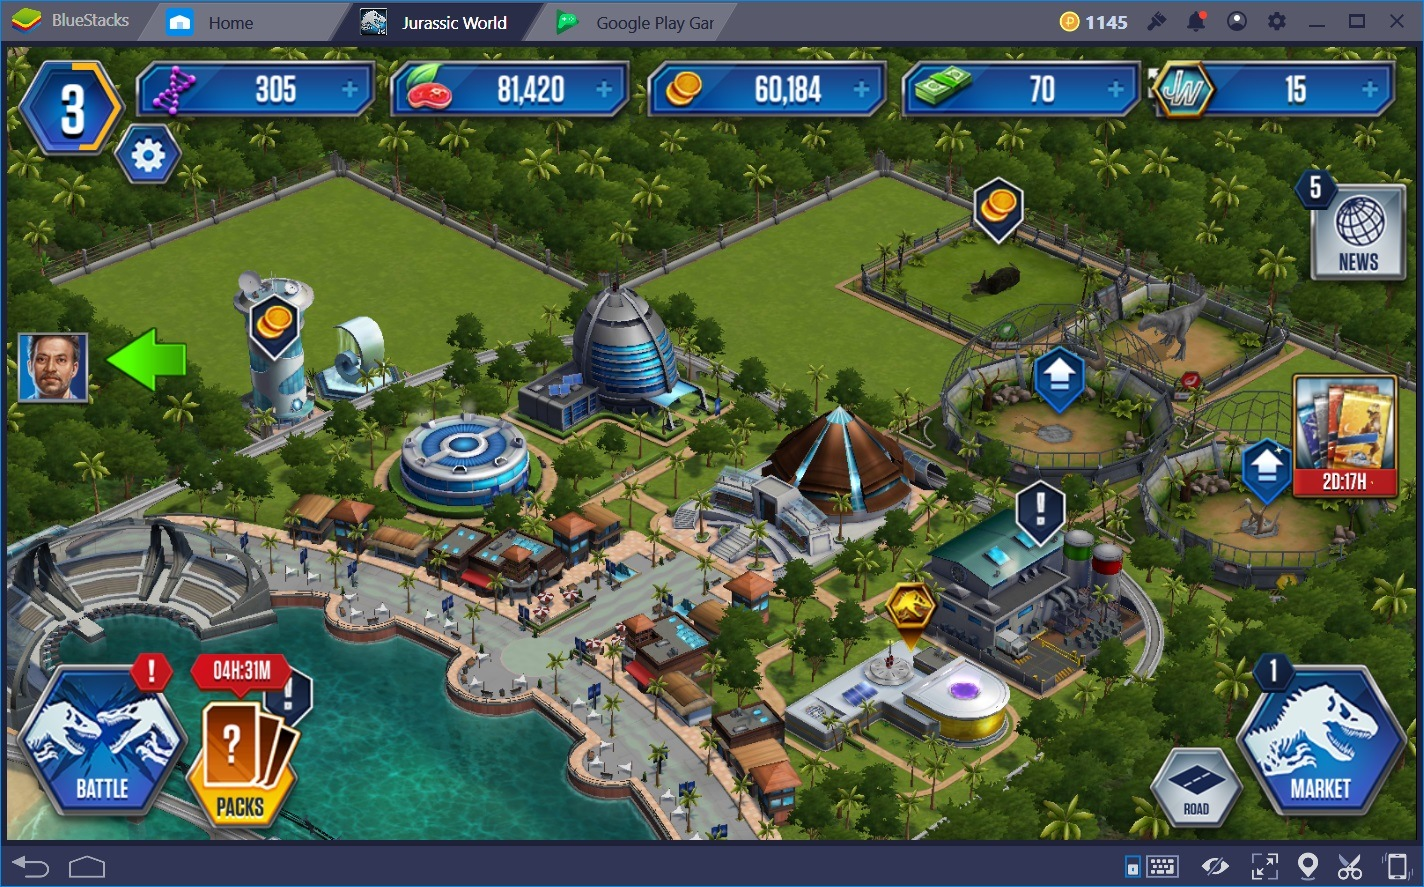 Getting Started in Jurassic World: The Game | BlueStacks